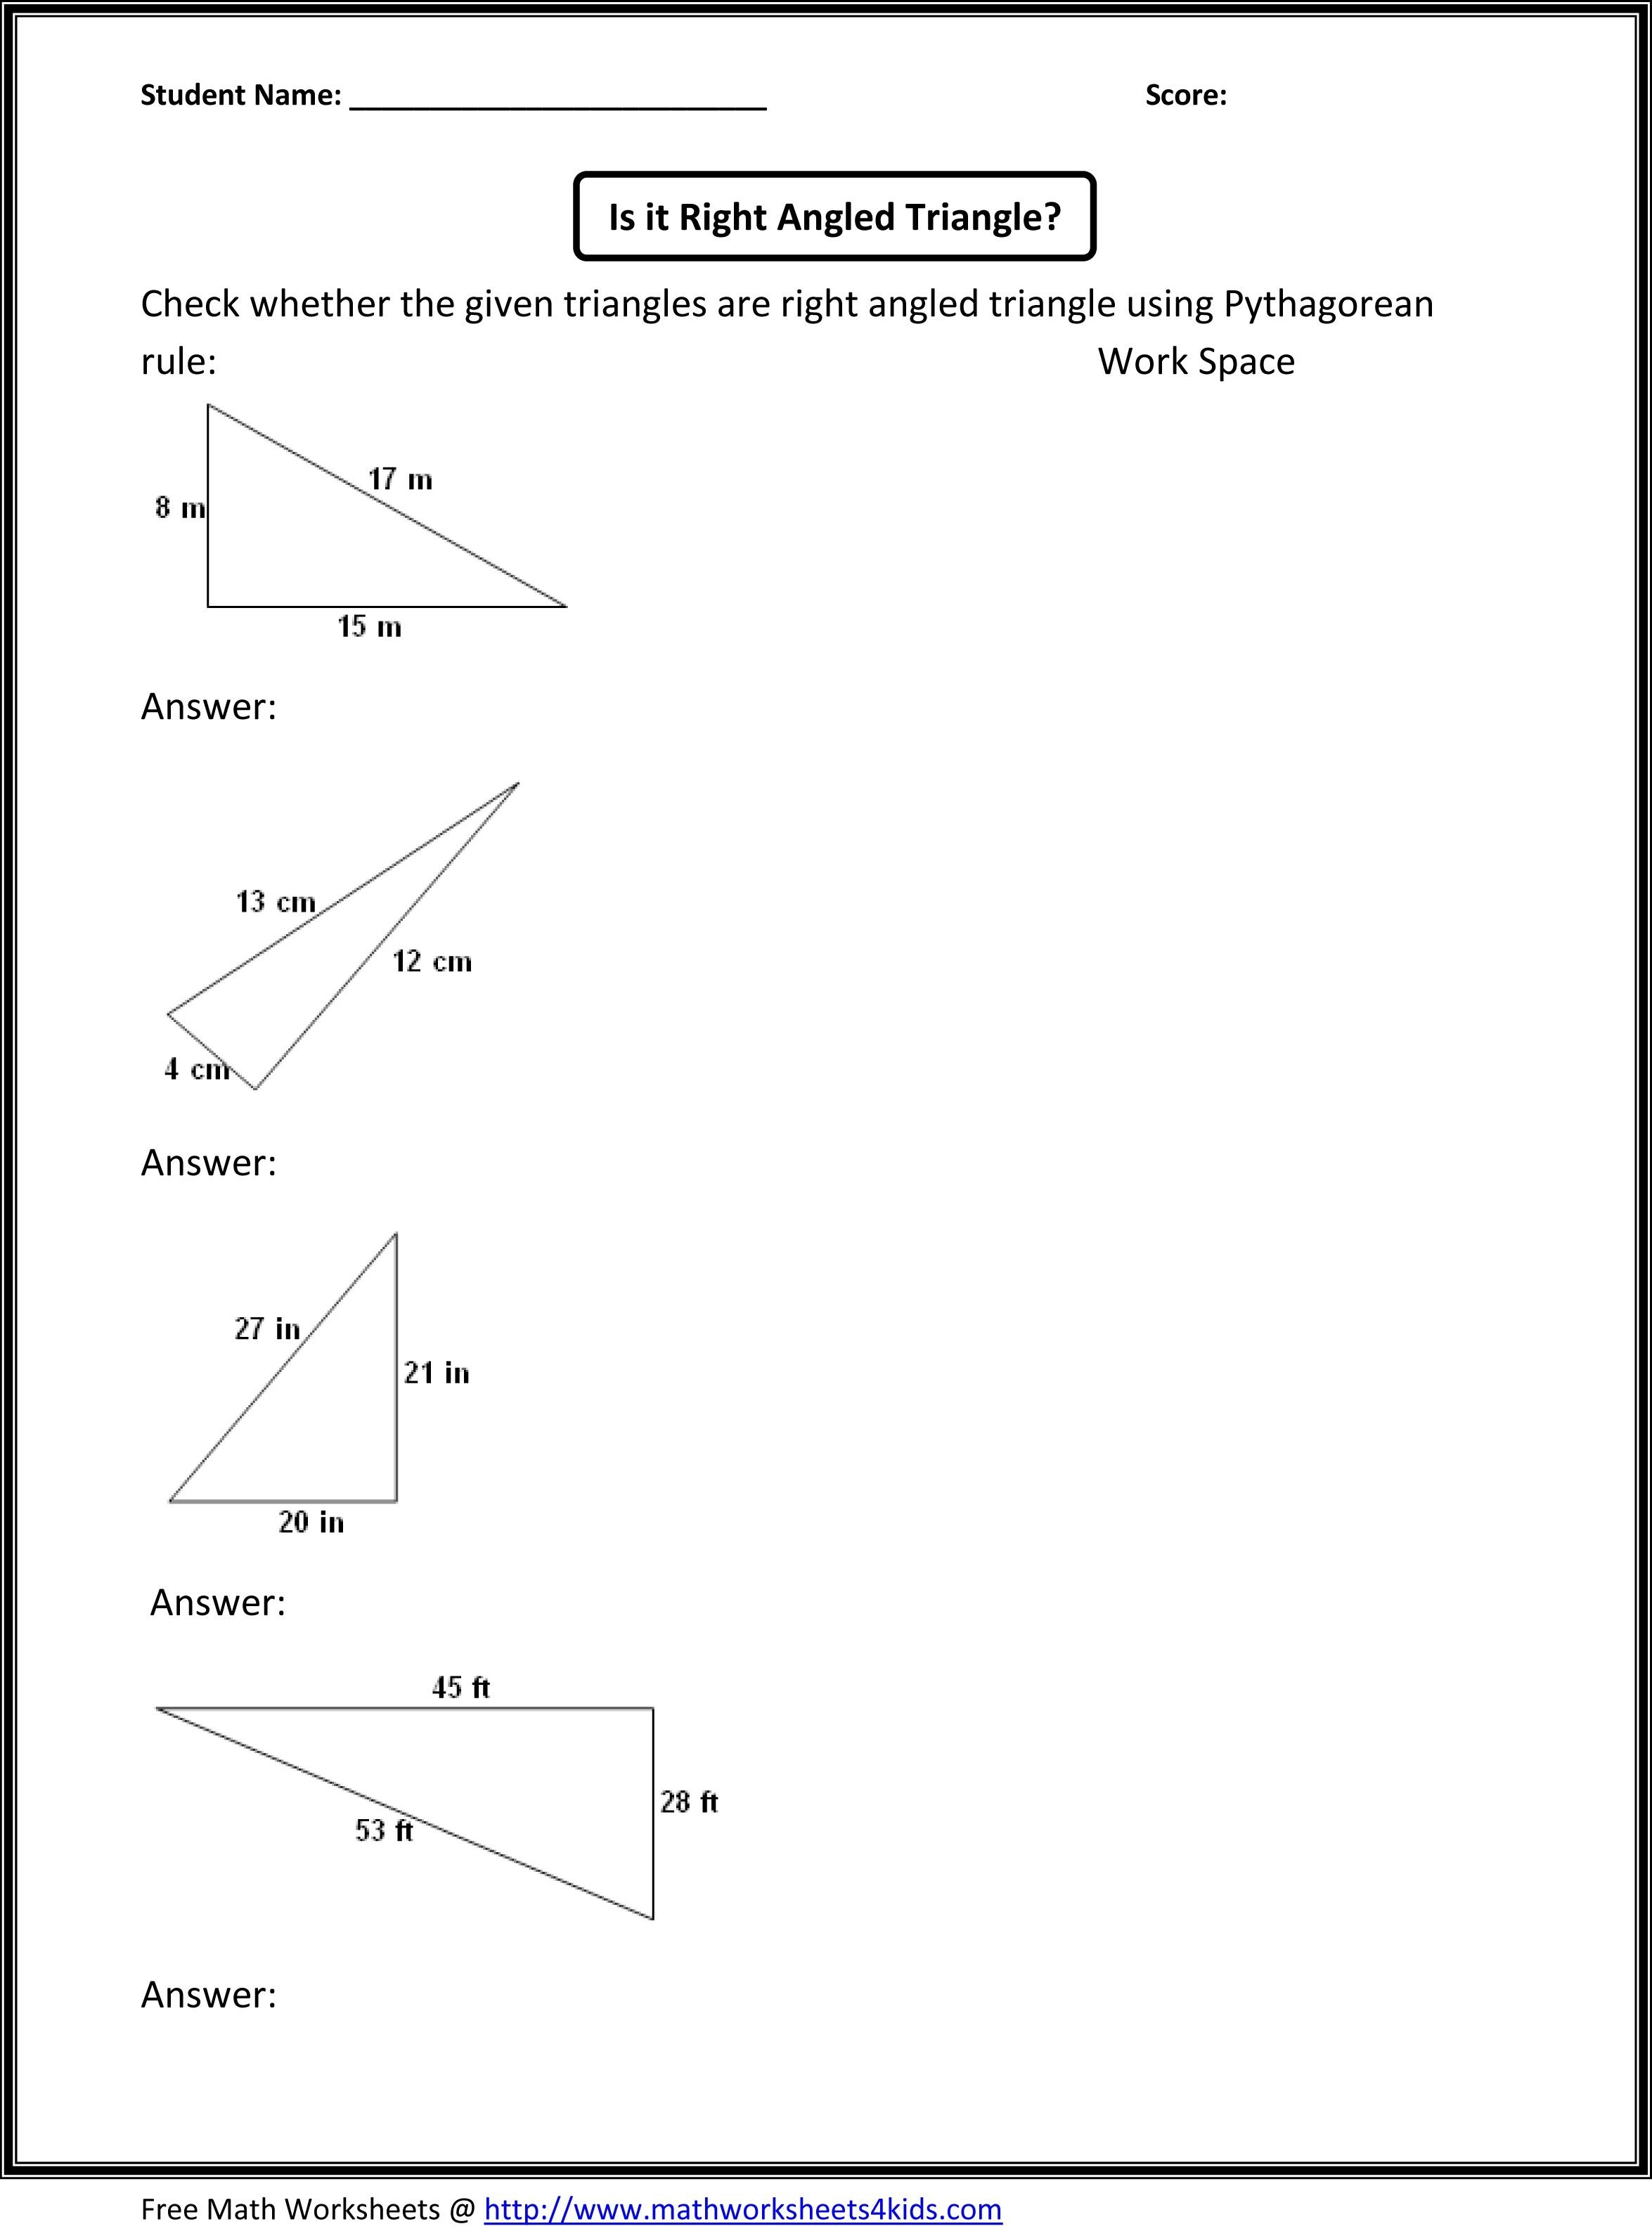 Great Site With Lots Of Eighth Grade Topics | Worksheets | 8Th Grade - Free Printable Pythagorean Theorem Worksheets